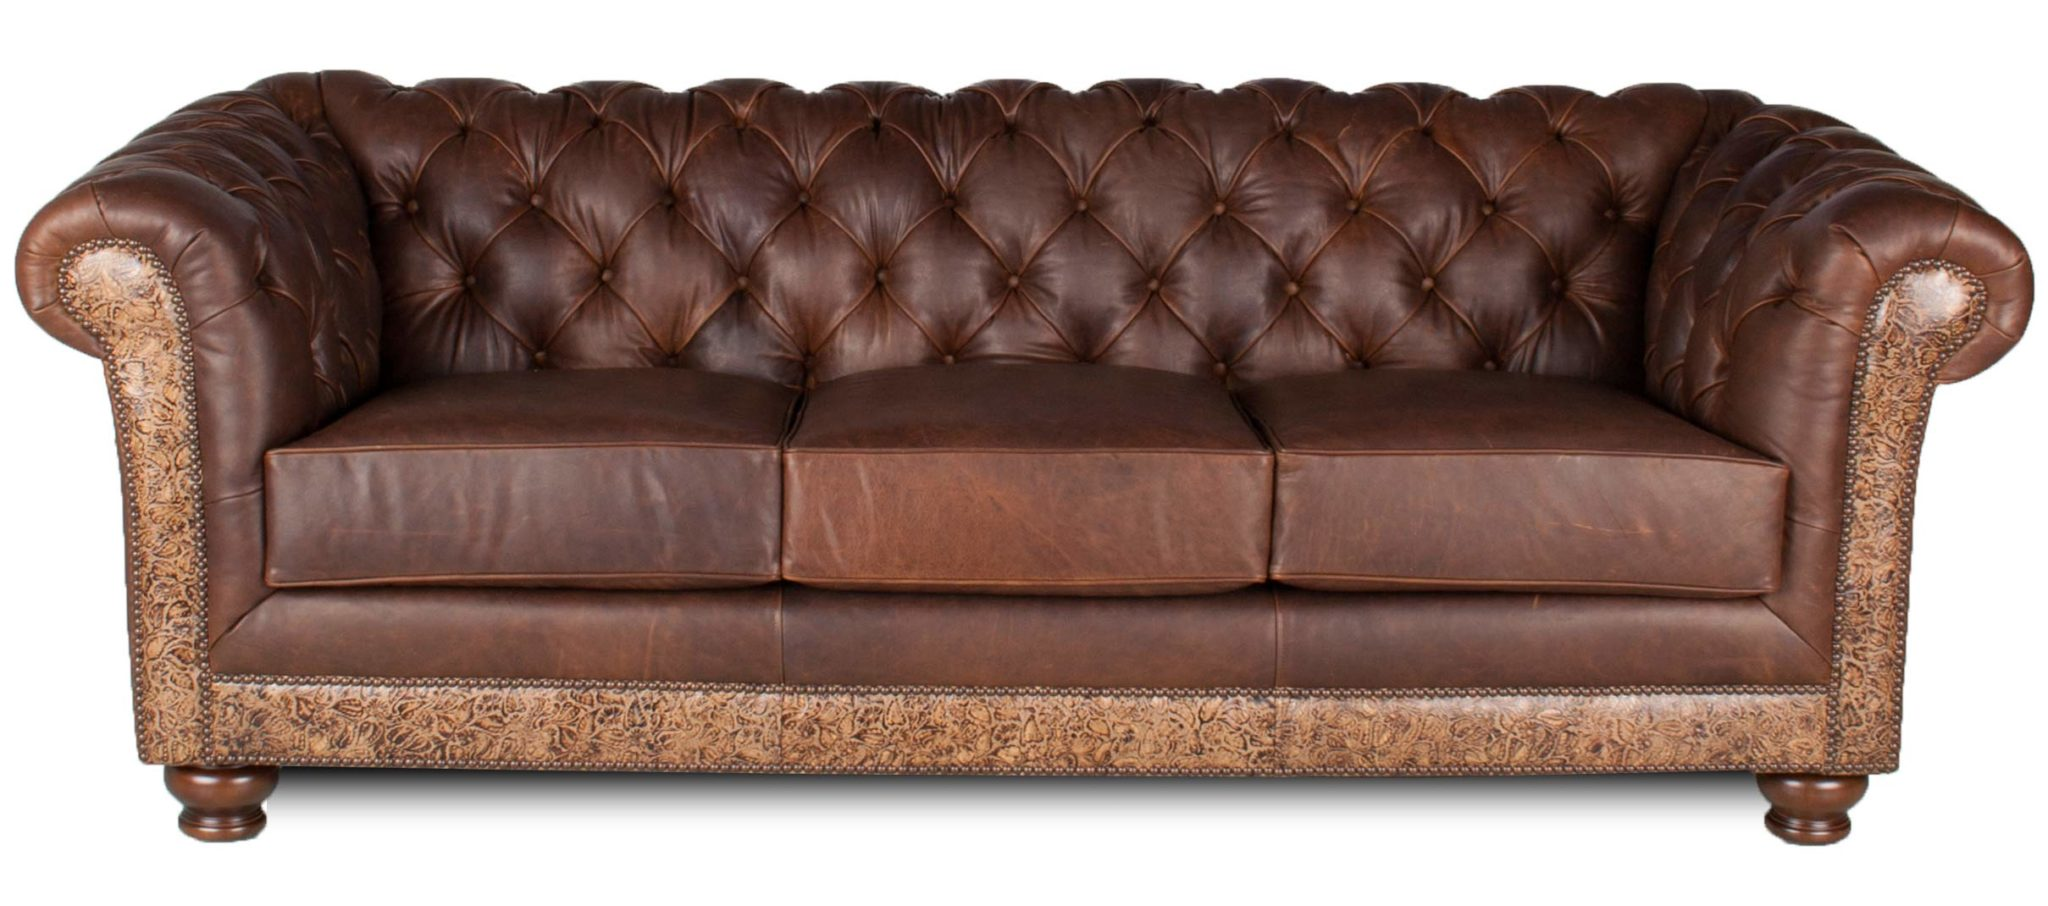 Executive leather furniture for Furniture leather sofa